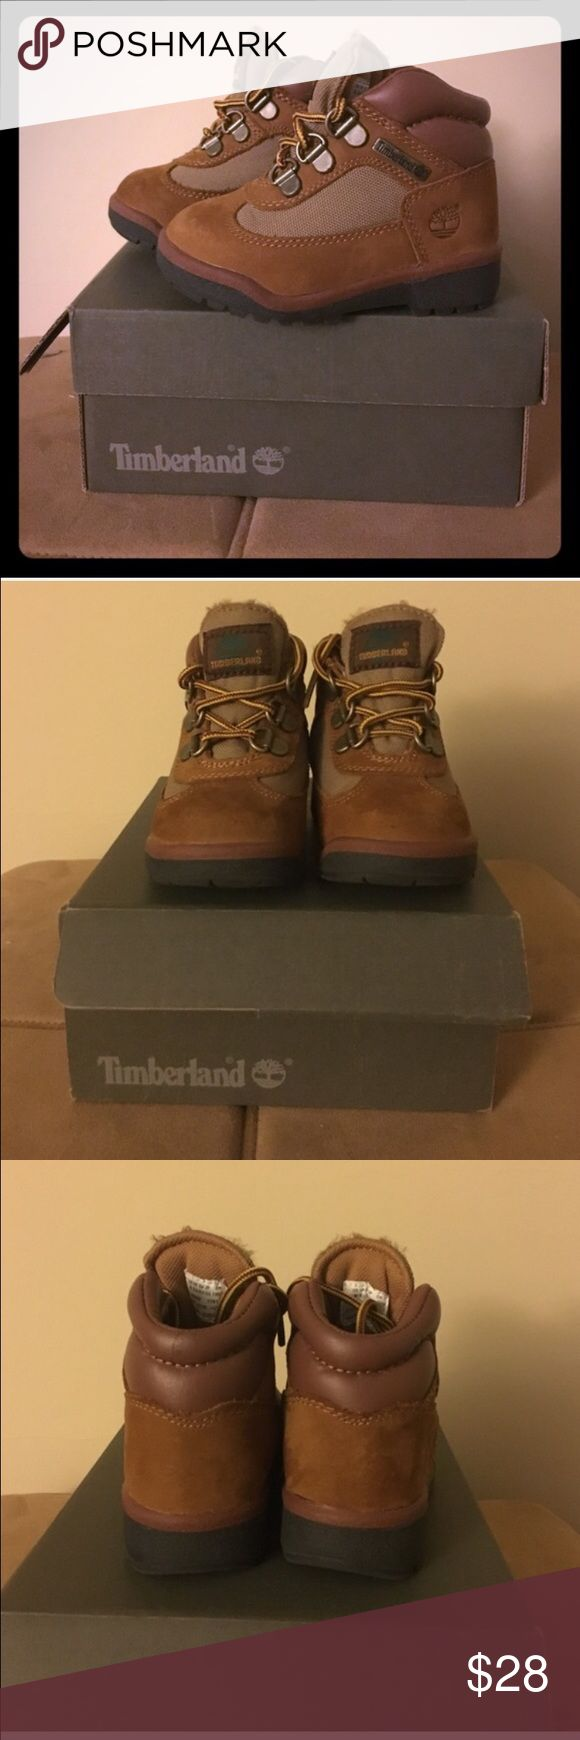 TIMBERLAND BOOTS for boy or girl Timberland Boots. ITEM IS STILL FOR SALE. Please disregard previous posting that says sold. In great condition. Timberland Shoes Boots